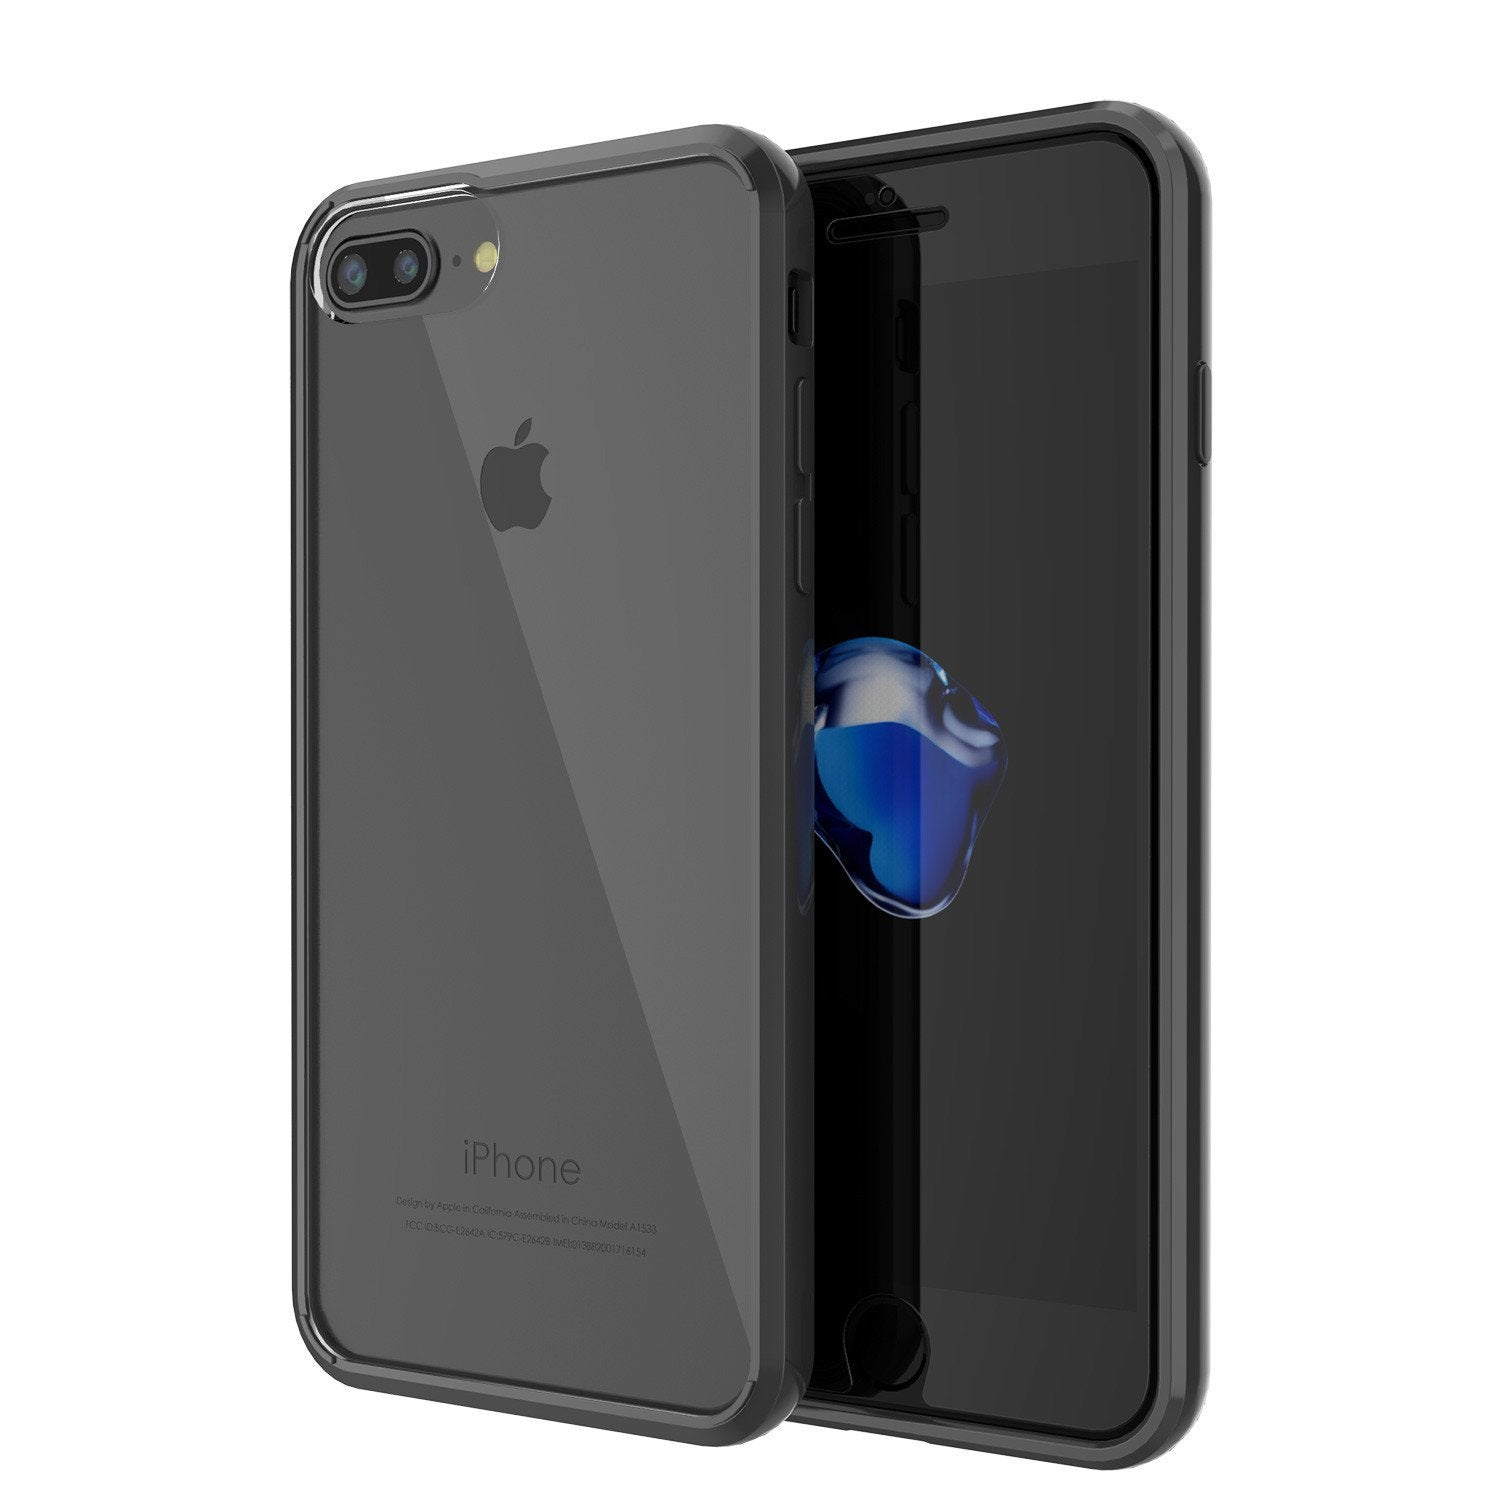 "iPhone SE (4.7"") Case Punkcase® LUCID 2.0 Black Series w/ PUNK SHIELD Screen Protector 